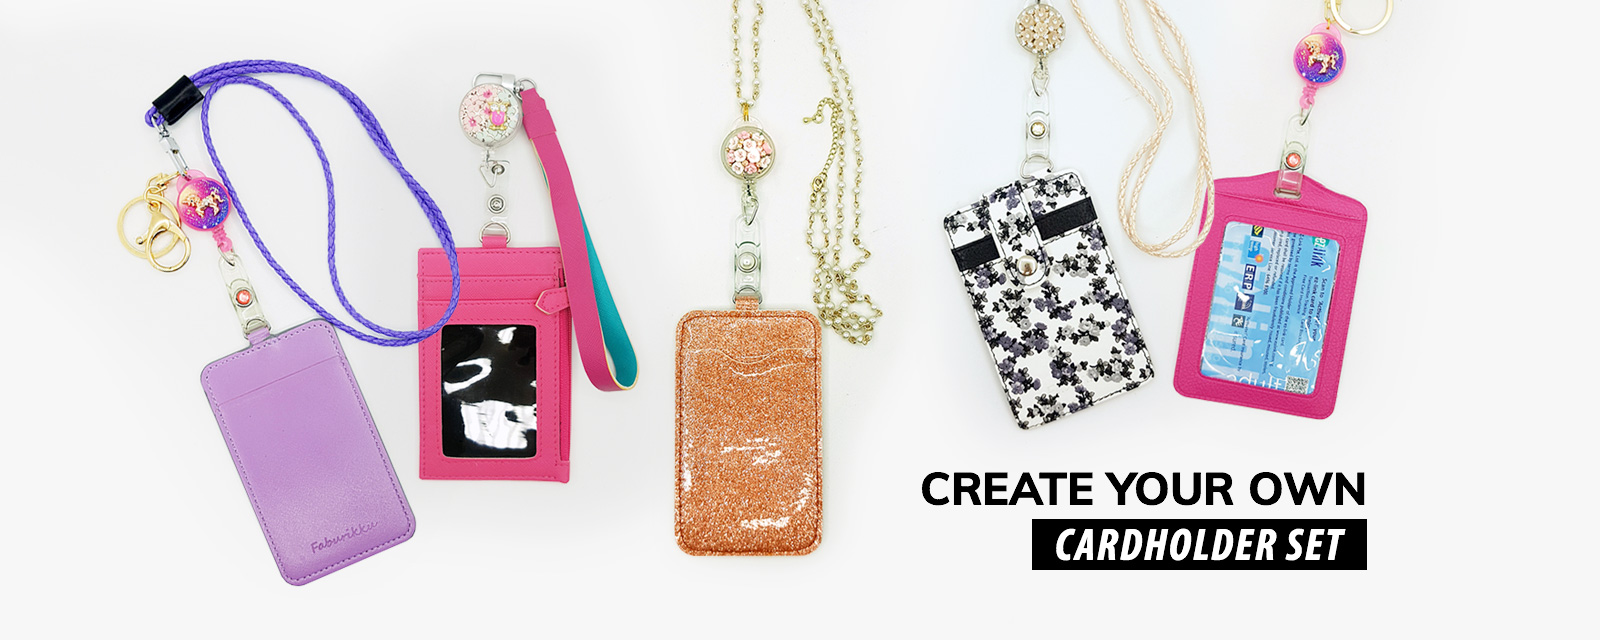 CREATE YOUR OWN CARDHOLDER SET